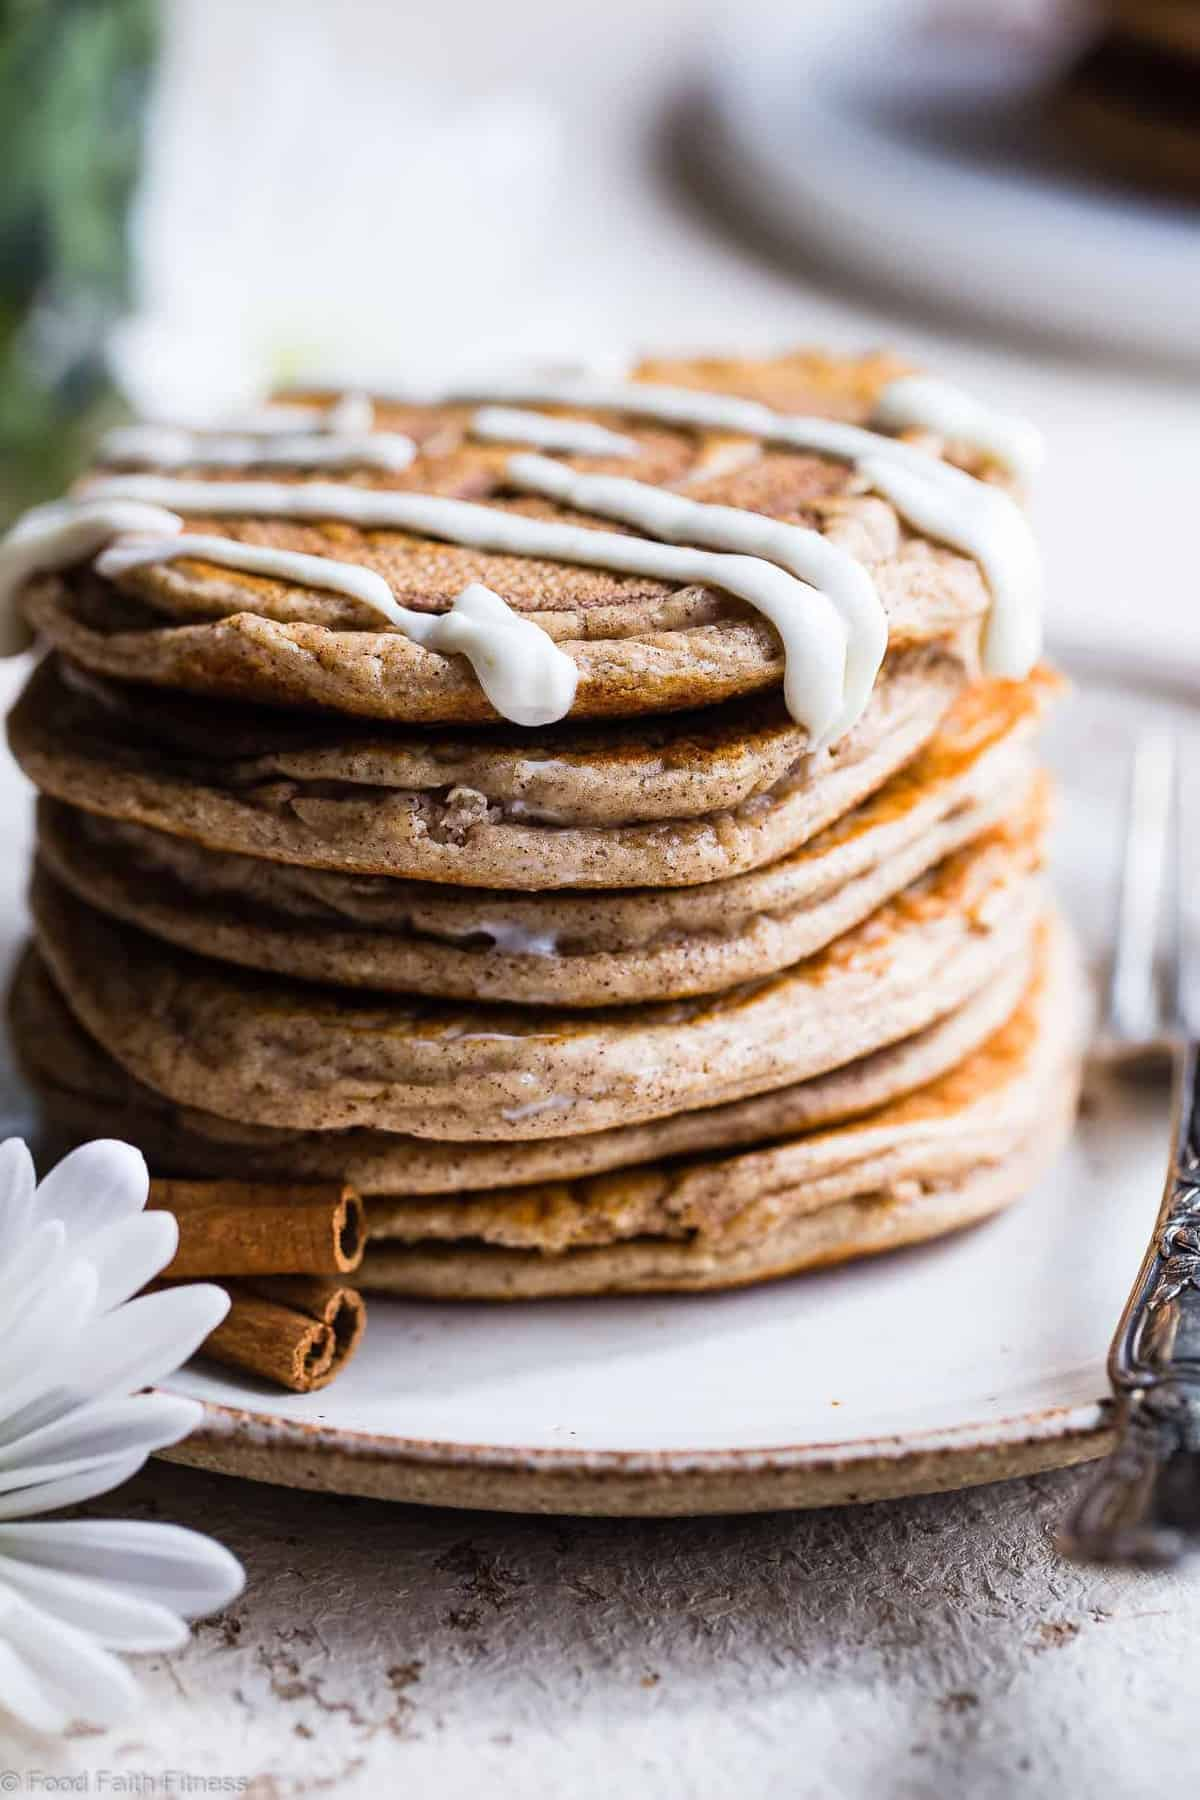 Easy Cinnamon Roll Gluten Free Low Carb Keto Protein Pancakes - These EASY, low carb high protein pancakes recipe is going to be your new favorite breakfast! Great for kids and adults and packed with 23g of protein! Who doesn't want to wake up to healthy cinnamon rolls?! | #Foodfaithfitness | #Keto #Lowcarb #Glutenfree #Healthy #Pancakes